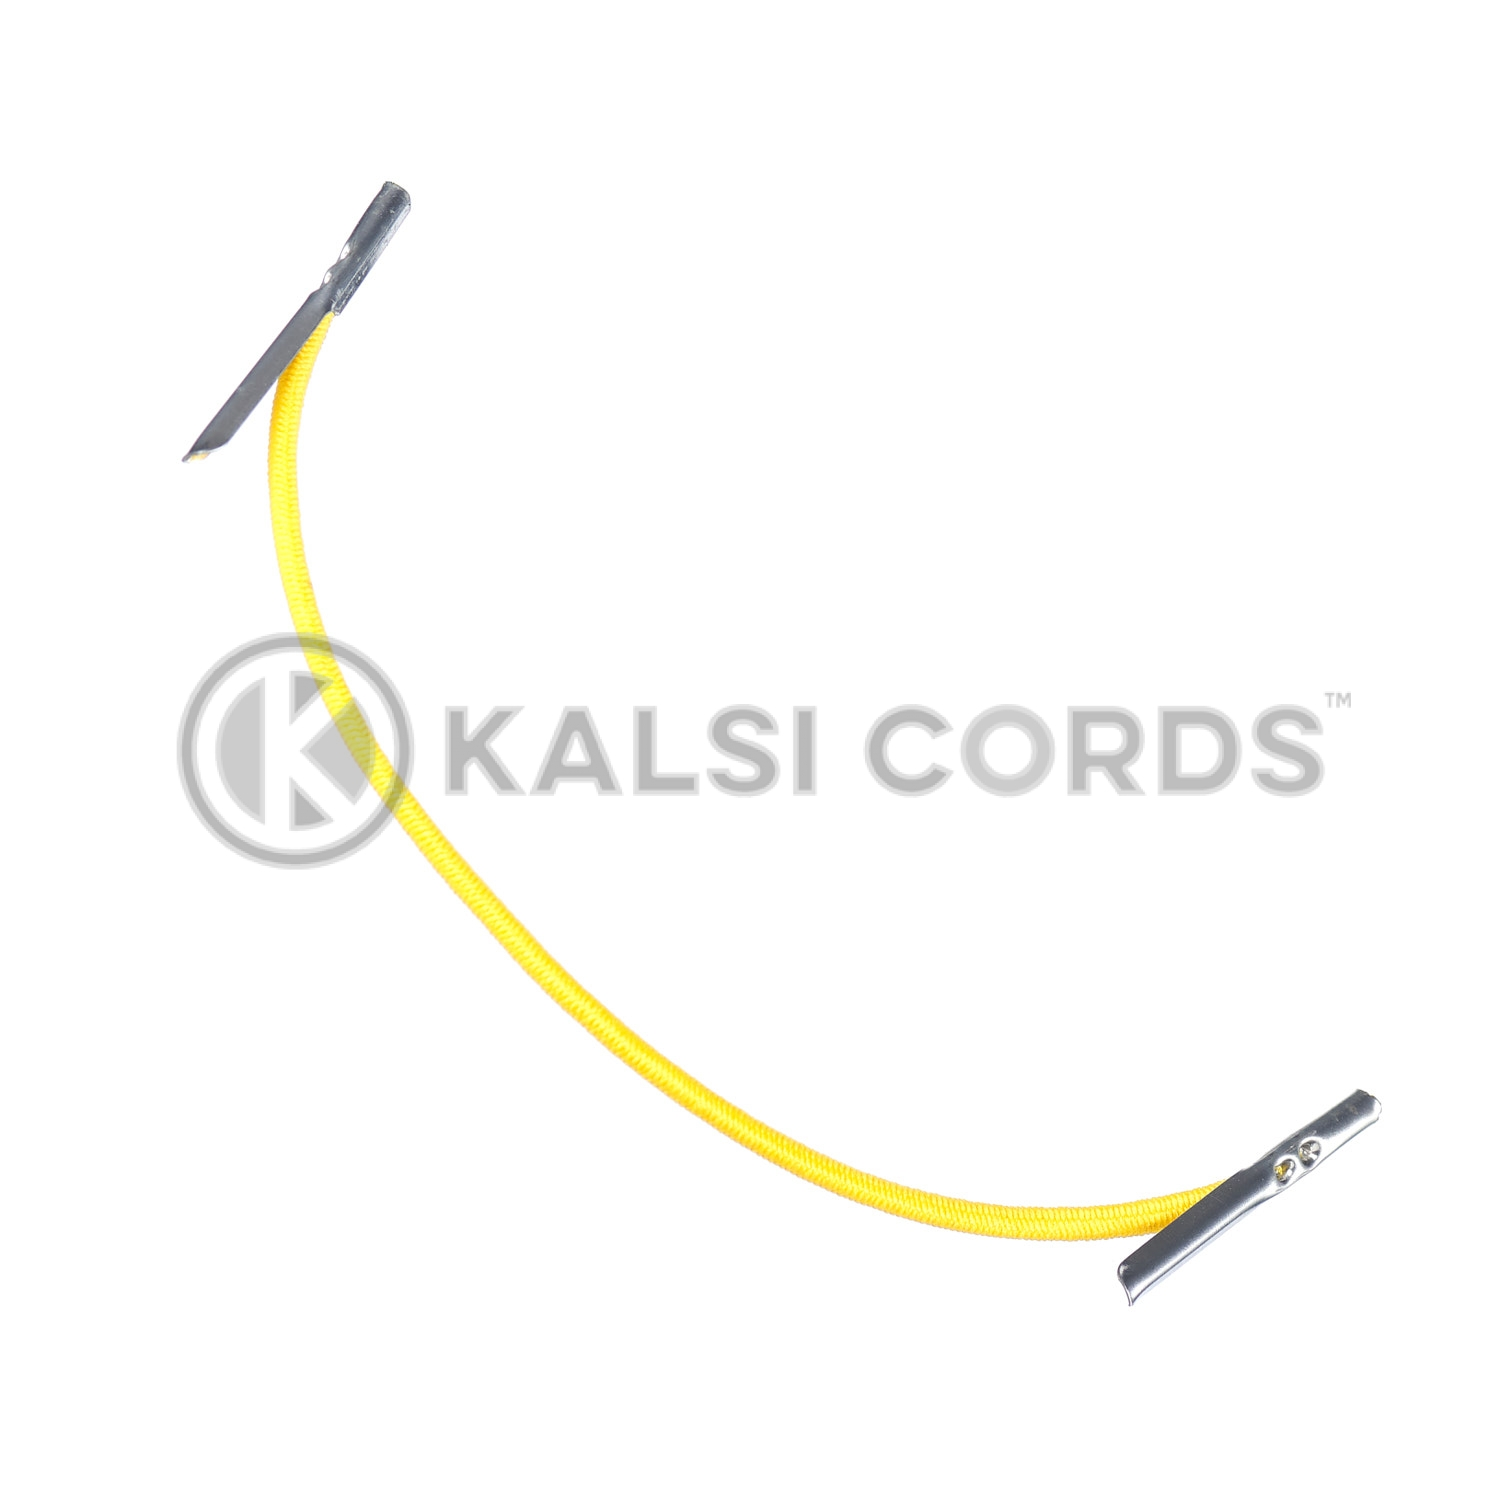 2mm Round Elastic Metal Tongue Tags Yellow MTNG TPE84 YELL 1 Kalsi Cords